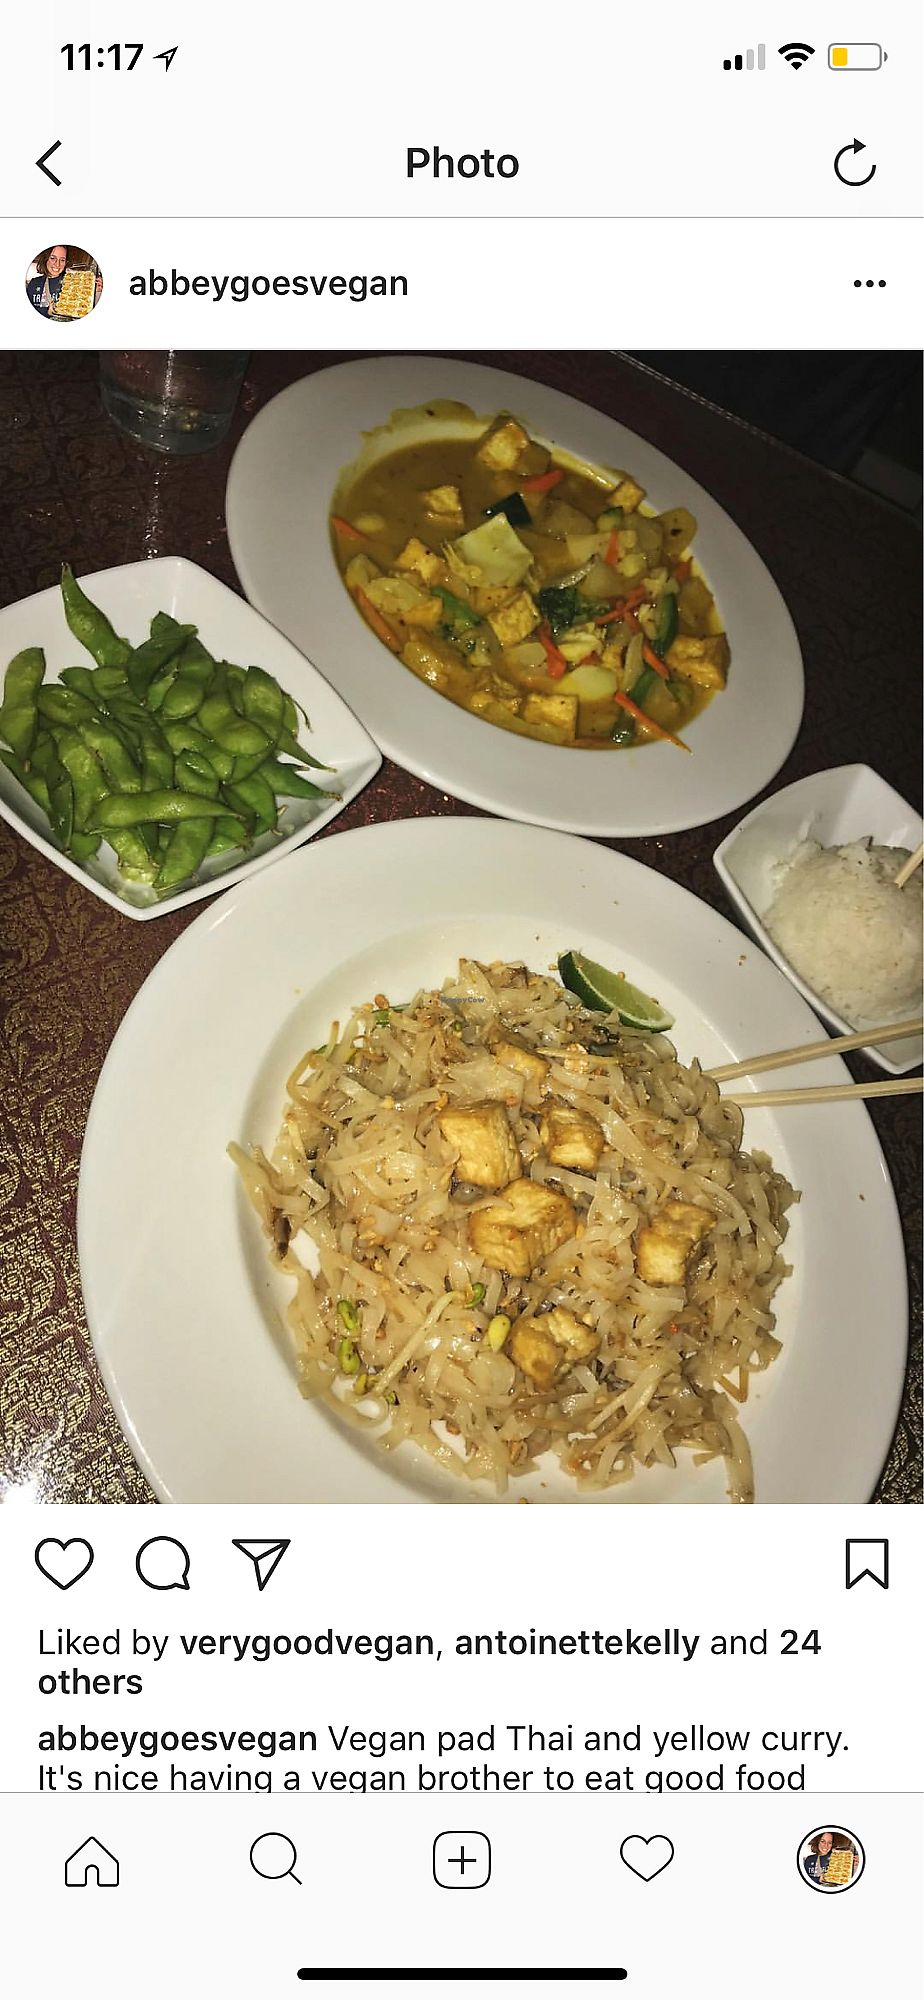 """Photo of Thai Siam  by <a href=""""/members/profile/AbigailAnnaFoster"""">AbigailAnnaFoster</a> <br/>Pineapple fried rice <br/> April 15, 2018  - <a href='/contact/abuse/image/46026/386010'>Report</a>"""